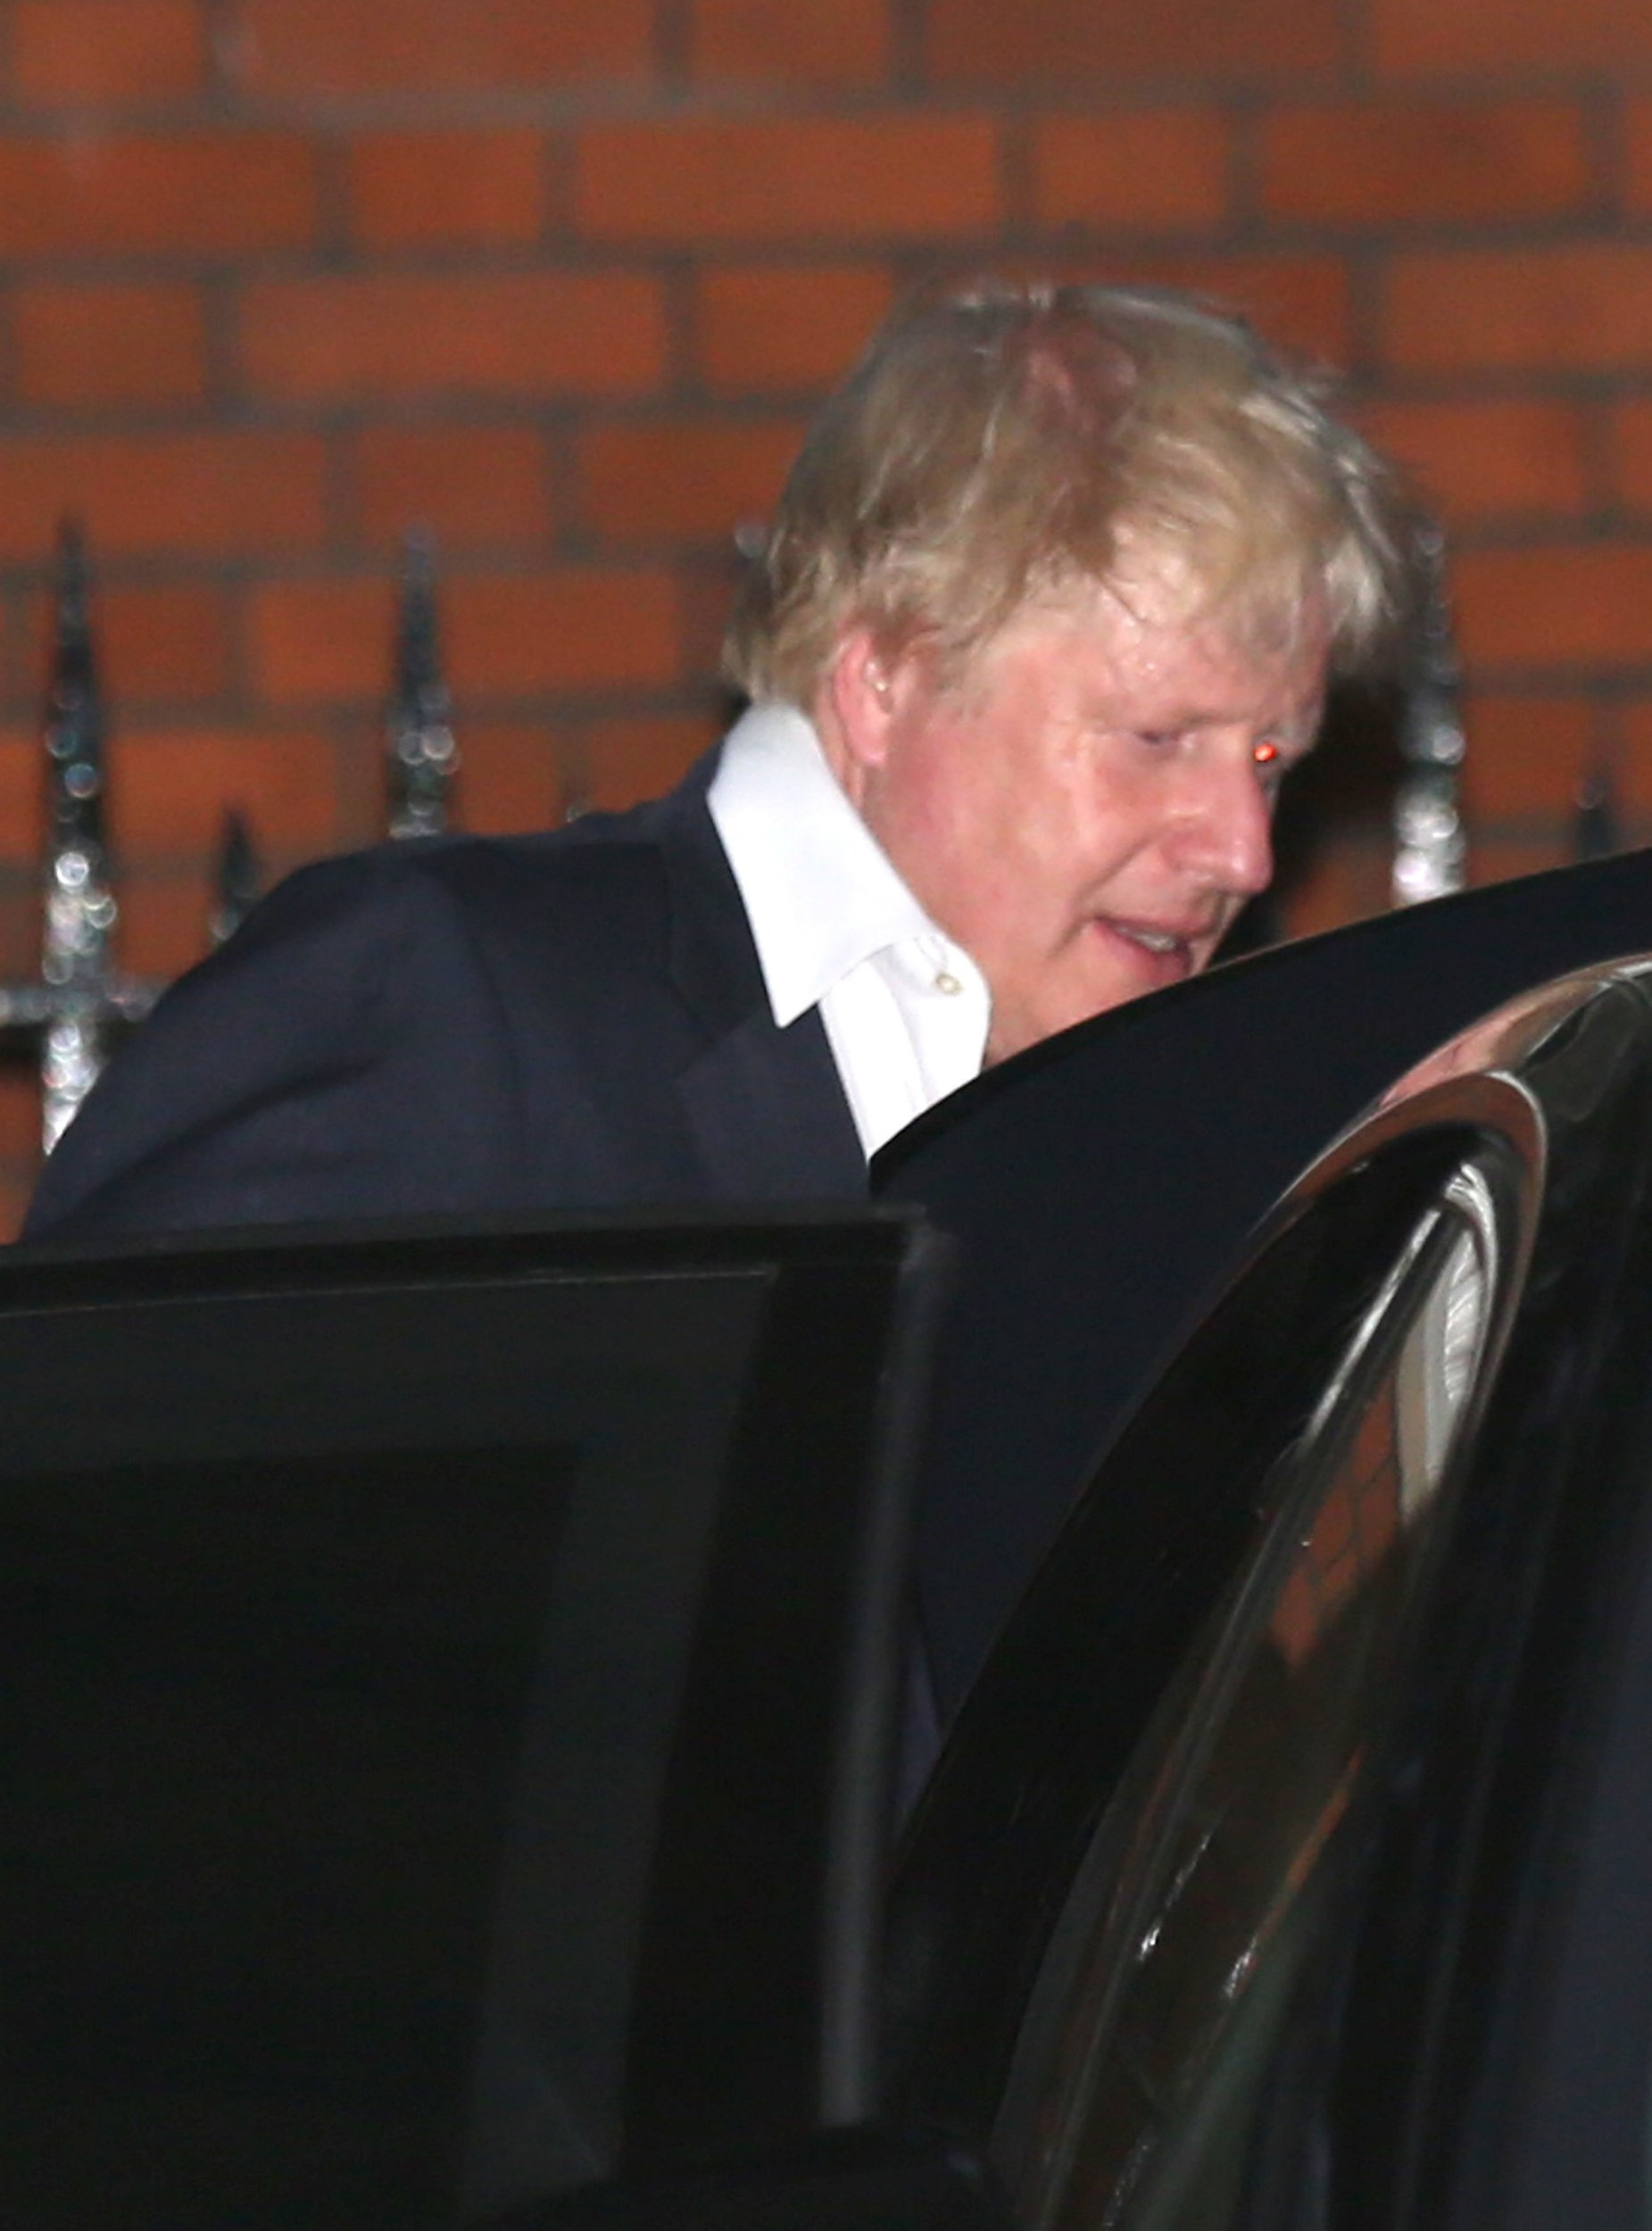 Boris Johnson leaves Carlton House Terrace in Westminster, London, after he resigned as Foreign Secretary. PRESS ASSOCIATION Photo. Picture date: Monday July 9, 2018. See PA story POLITICS Brexit. Photo credit should read: Isabel Infantes/PA Wire